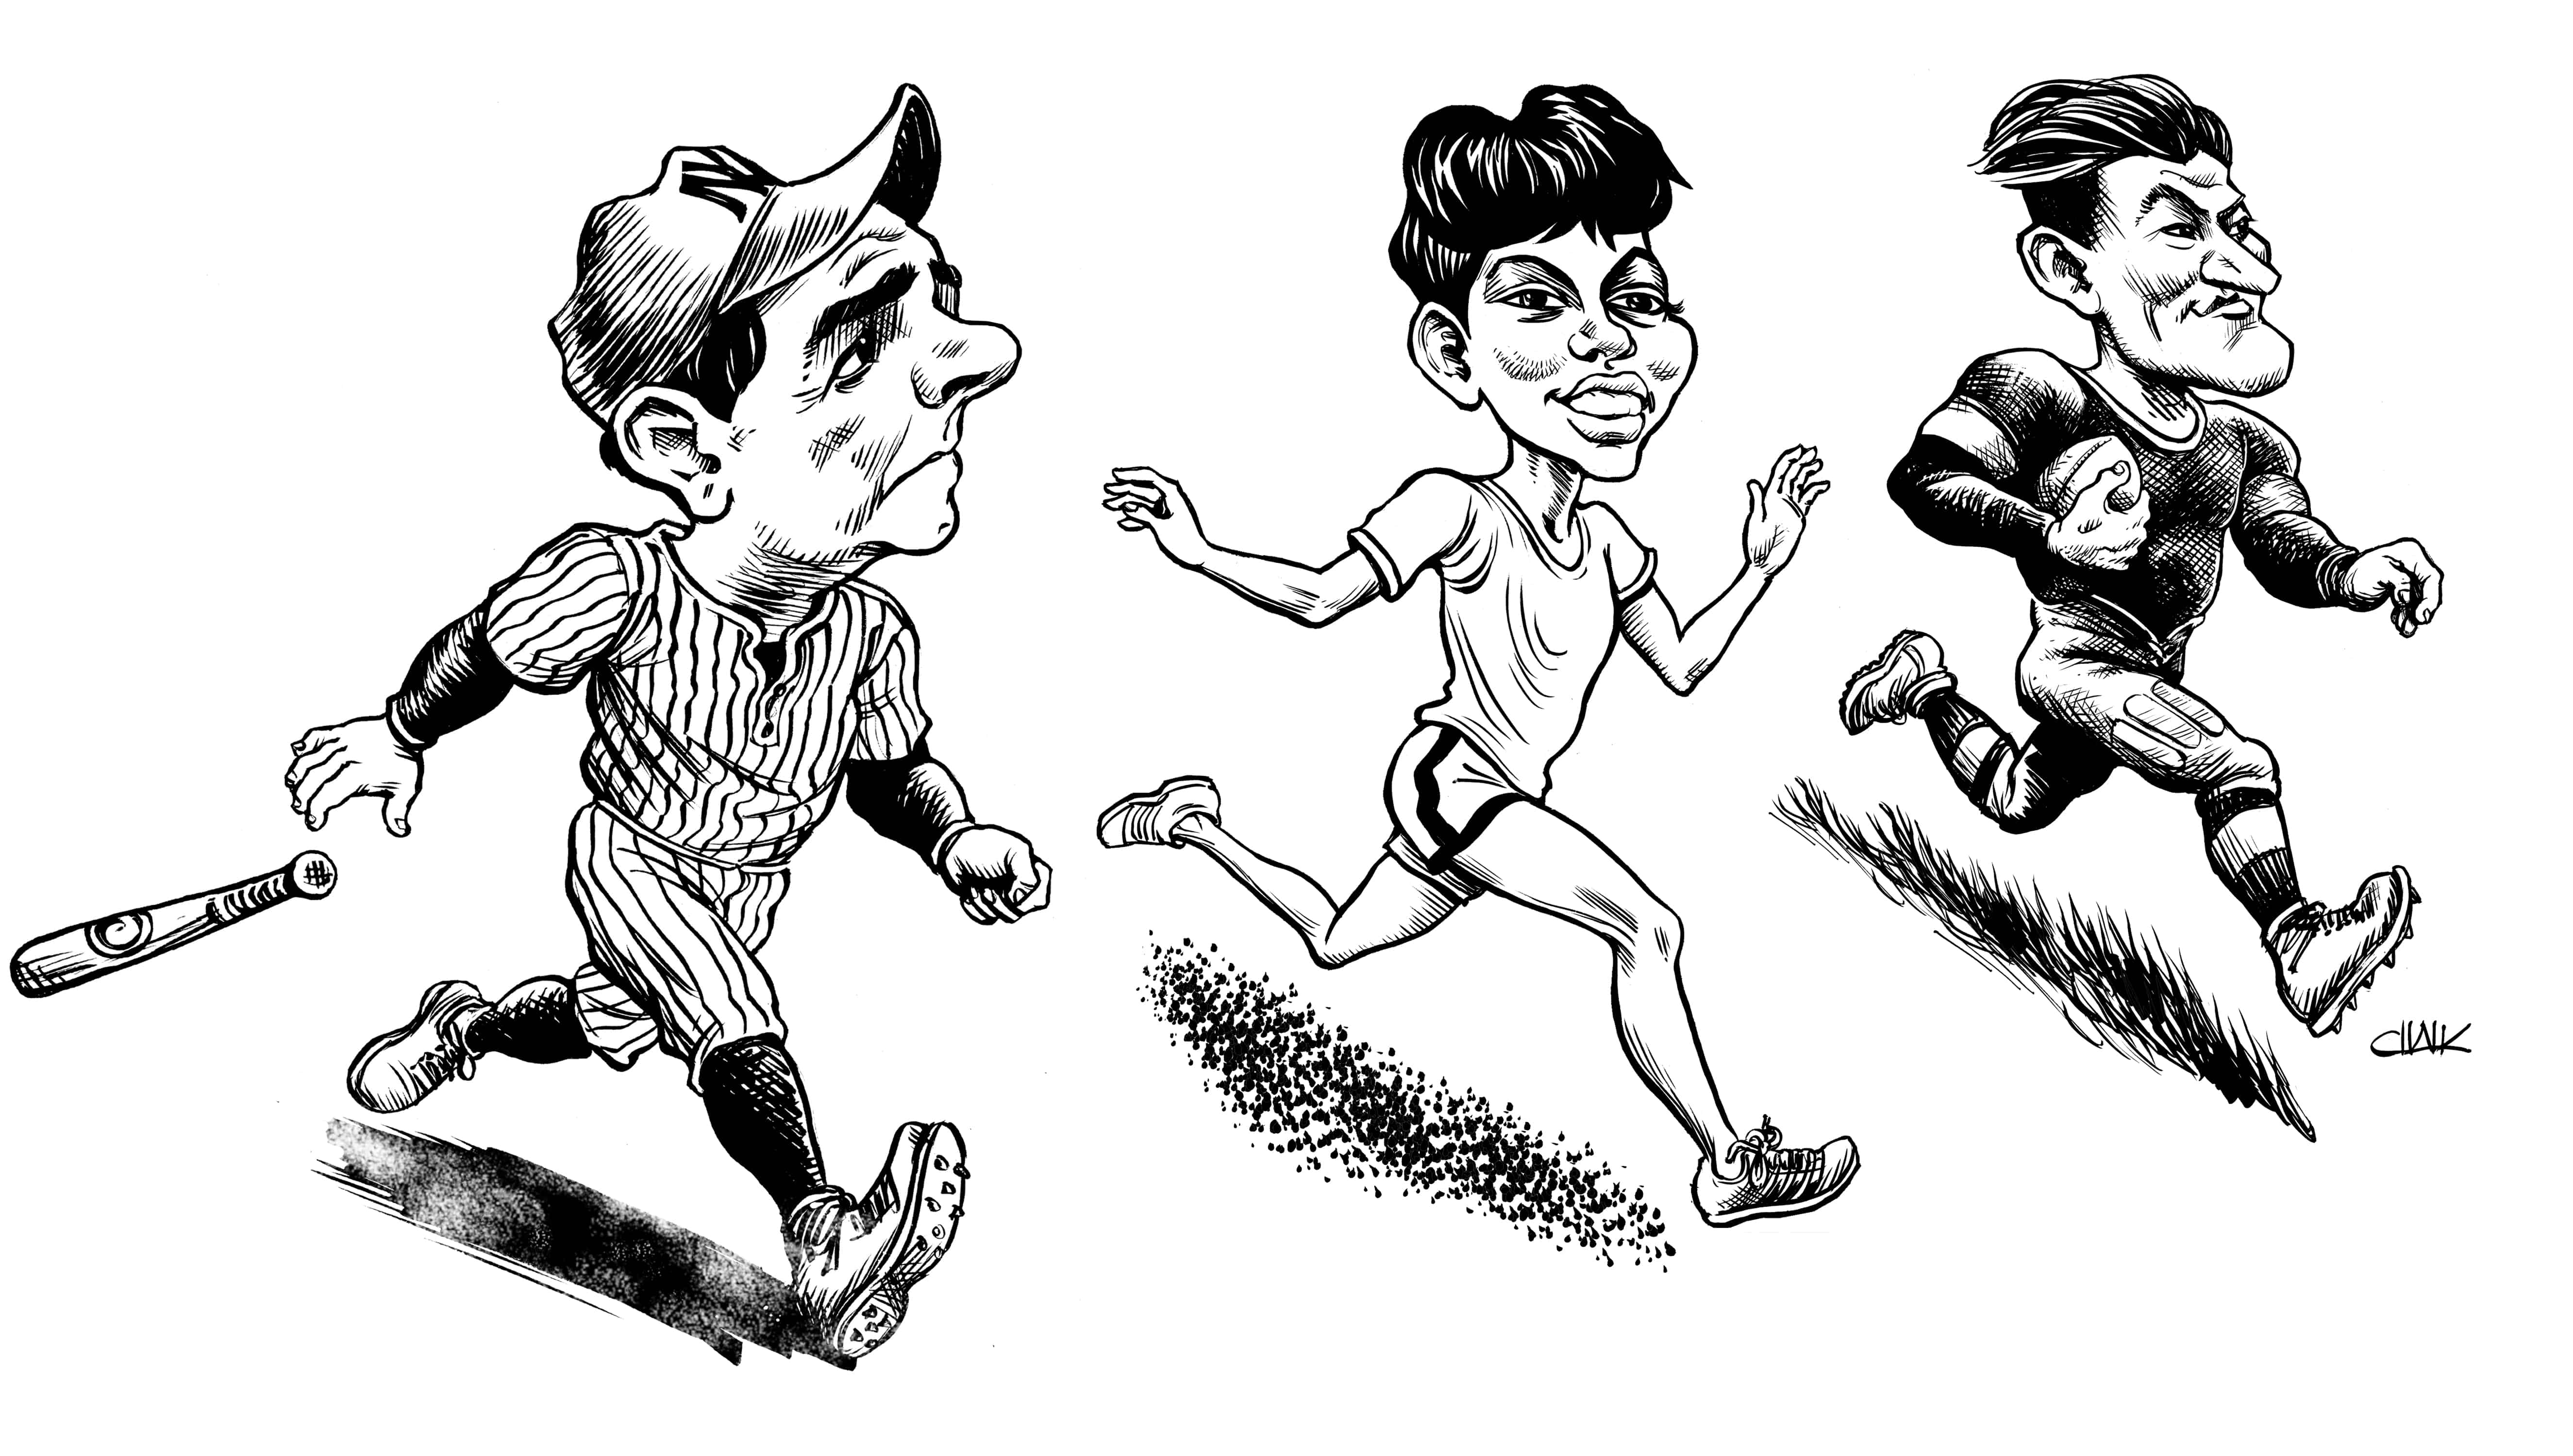 The Maryland Humanities Council's Chautauqua Summer Series, Sporting Lives, is returning to the Chesapeake Bay Maritime Museum in St. Michaels, MD on July 13, 14, & 15. This year's theme features living history performances of athletes Babe Ruth, Wilma Rudolph, and Jim Thorpe, as illustrated by Tom Chalkley here. The CBMM performances are generously underwritten by Karen and Langley Shook and the St. Michaels Running Festival, and are scheduled to take place from 7-9 p.m. on the waterfront lawn of CBMM's Fogg's Landing. Guests are encouraged to bring chairs and blankets for seating. In the event of rain, the performances will be moved inside. No advance registration is required.